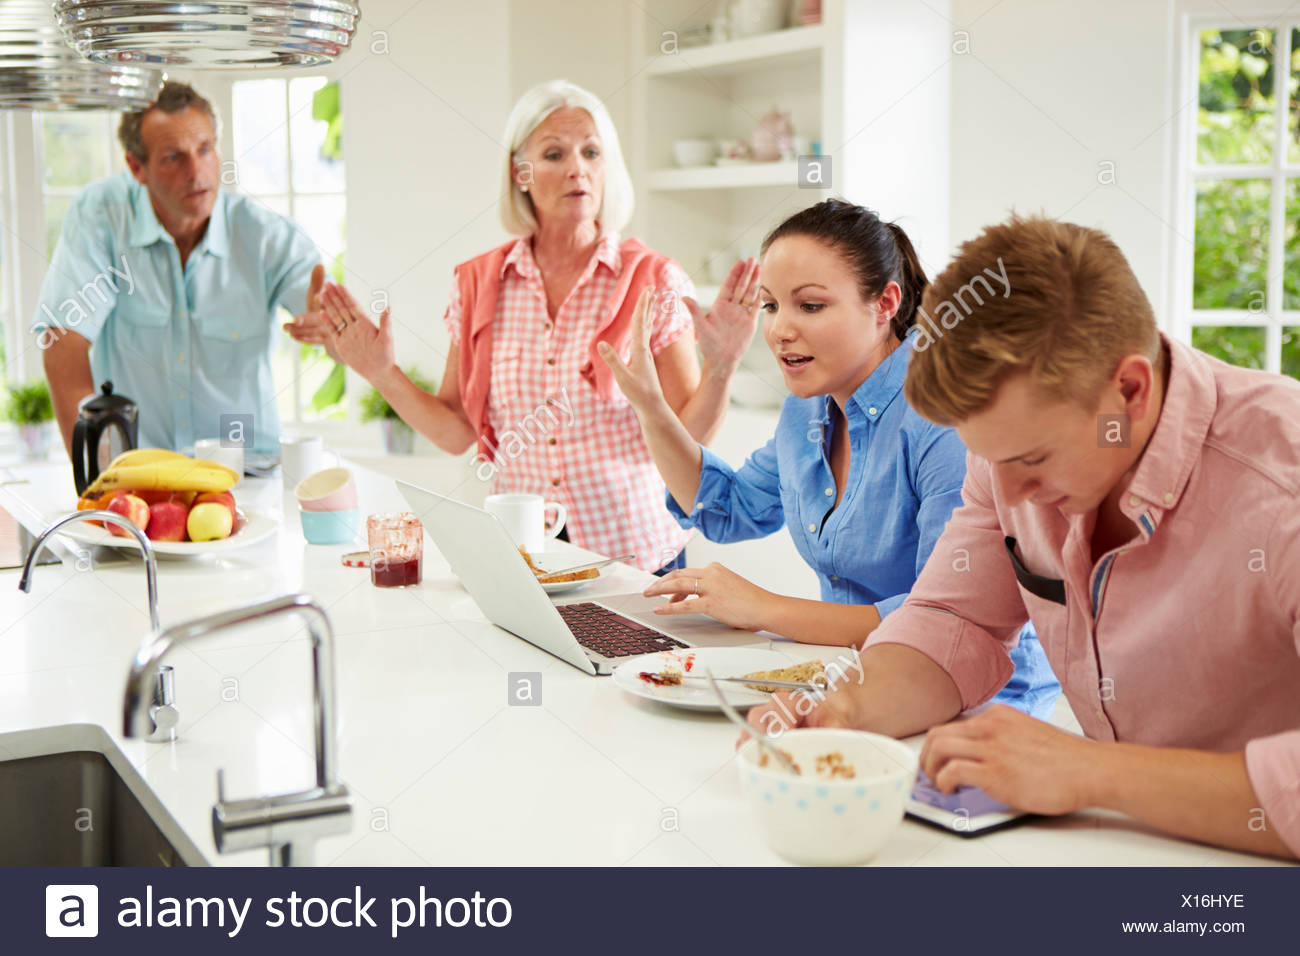 Family With Adult Children Having Argument At Breakfast - Stock Image